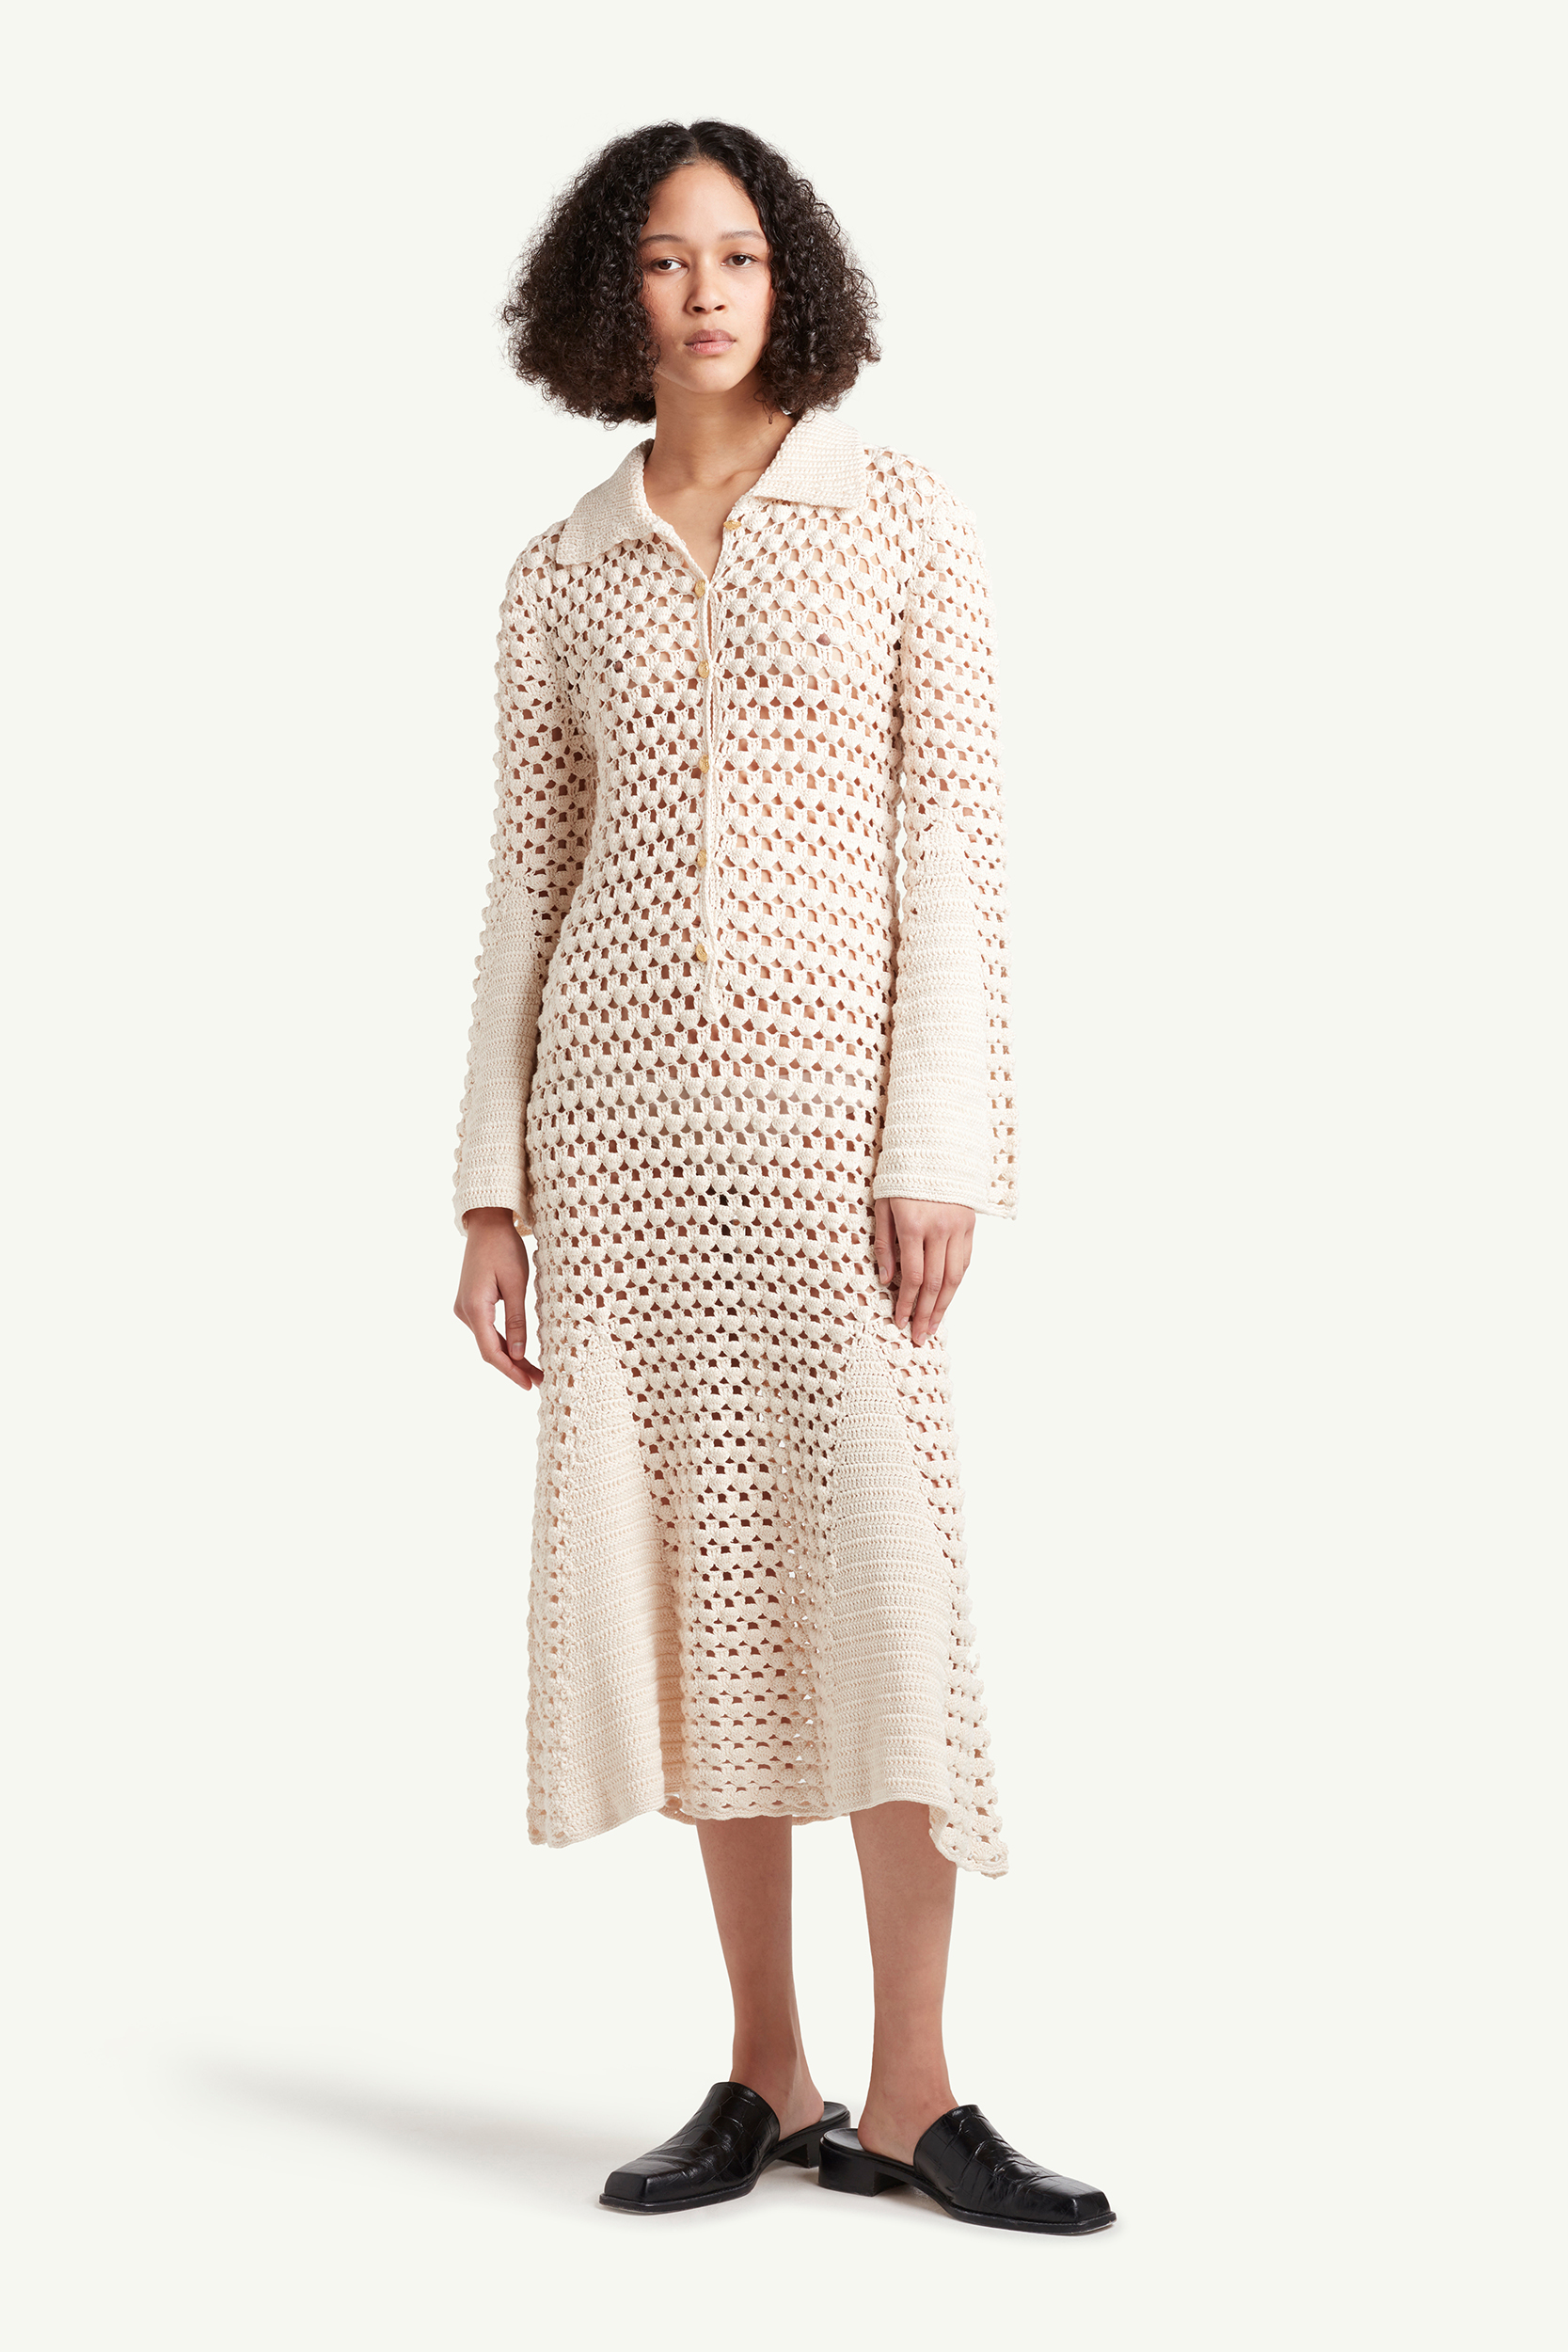 Wales Bonner Womenswear Model wearing a white see-through knitted dress | LRP